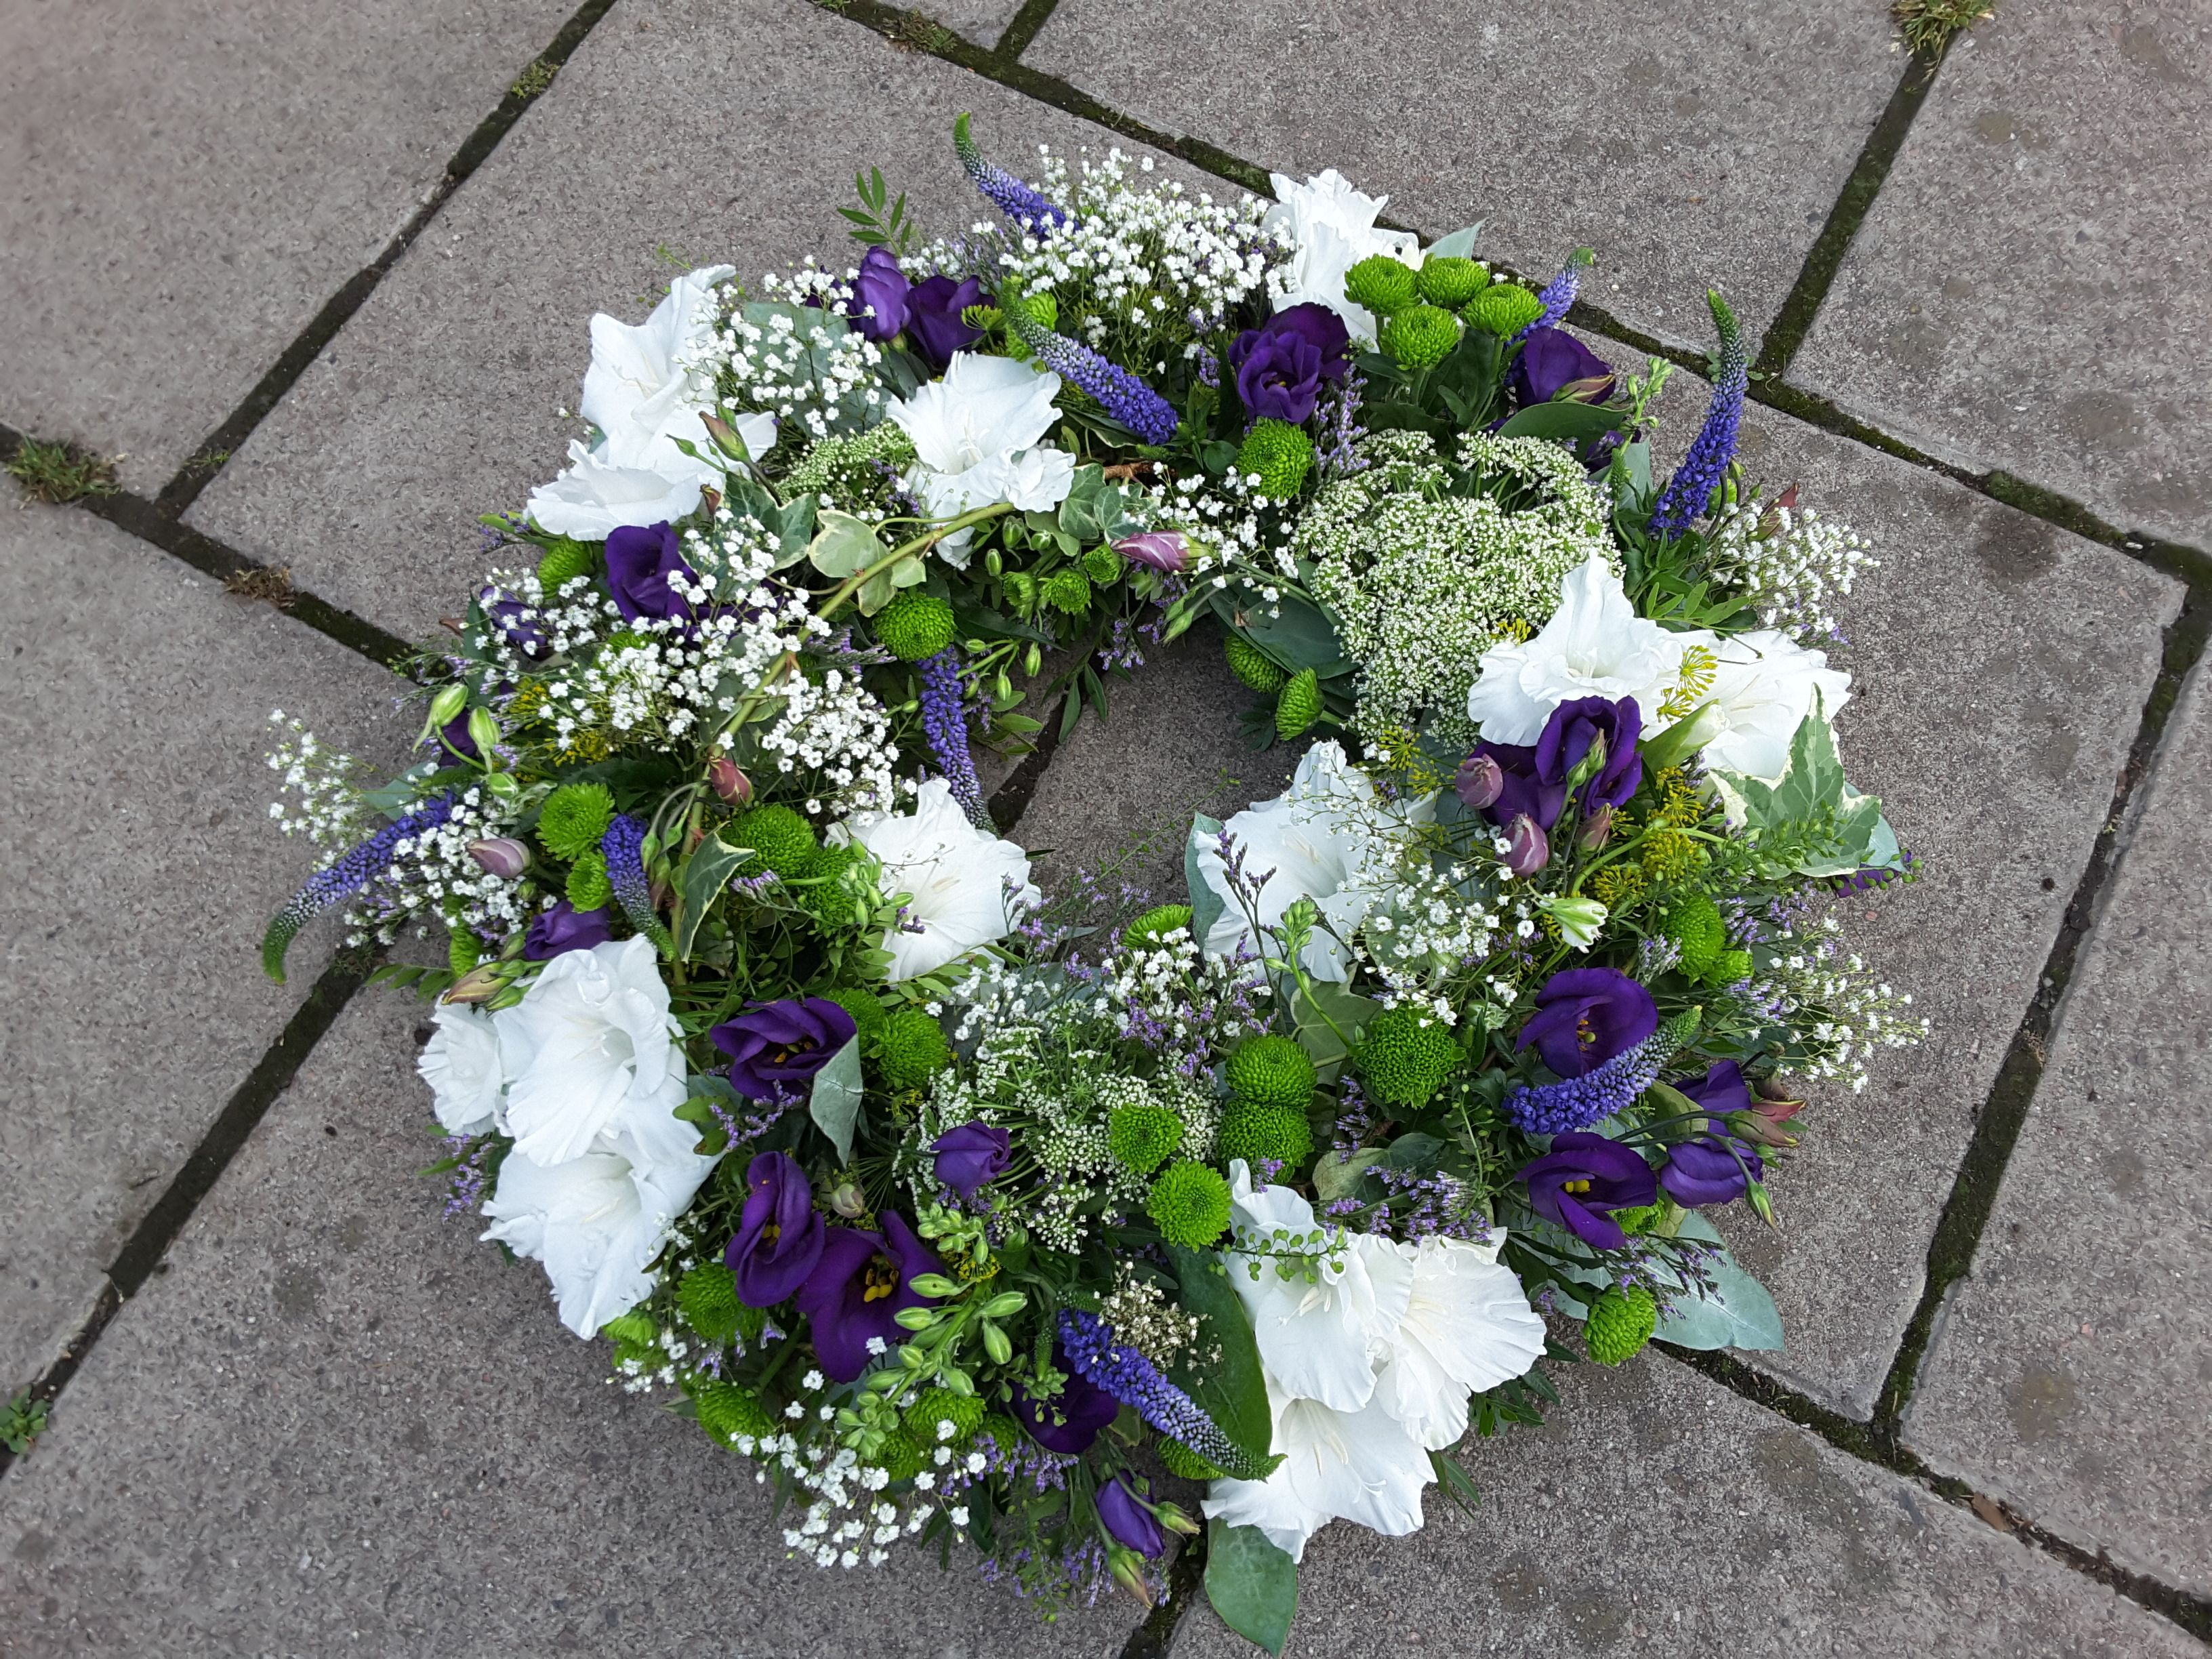 Summer styled funeral wreath in whites, greens and purples